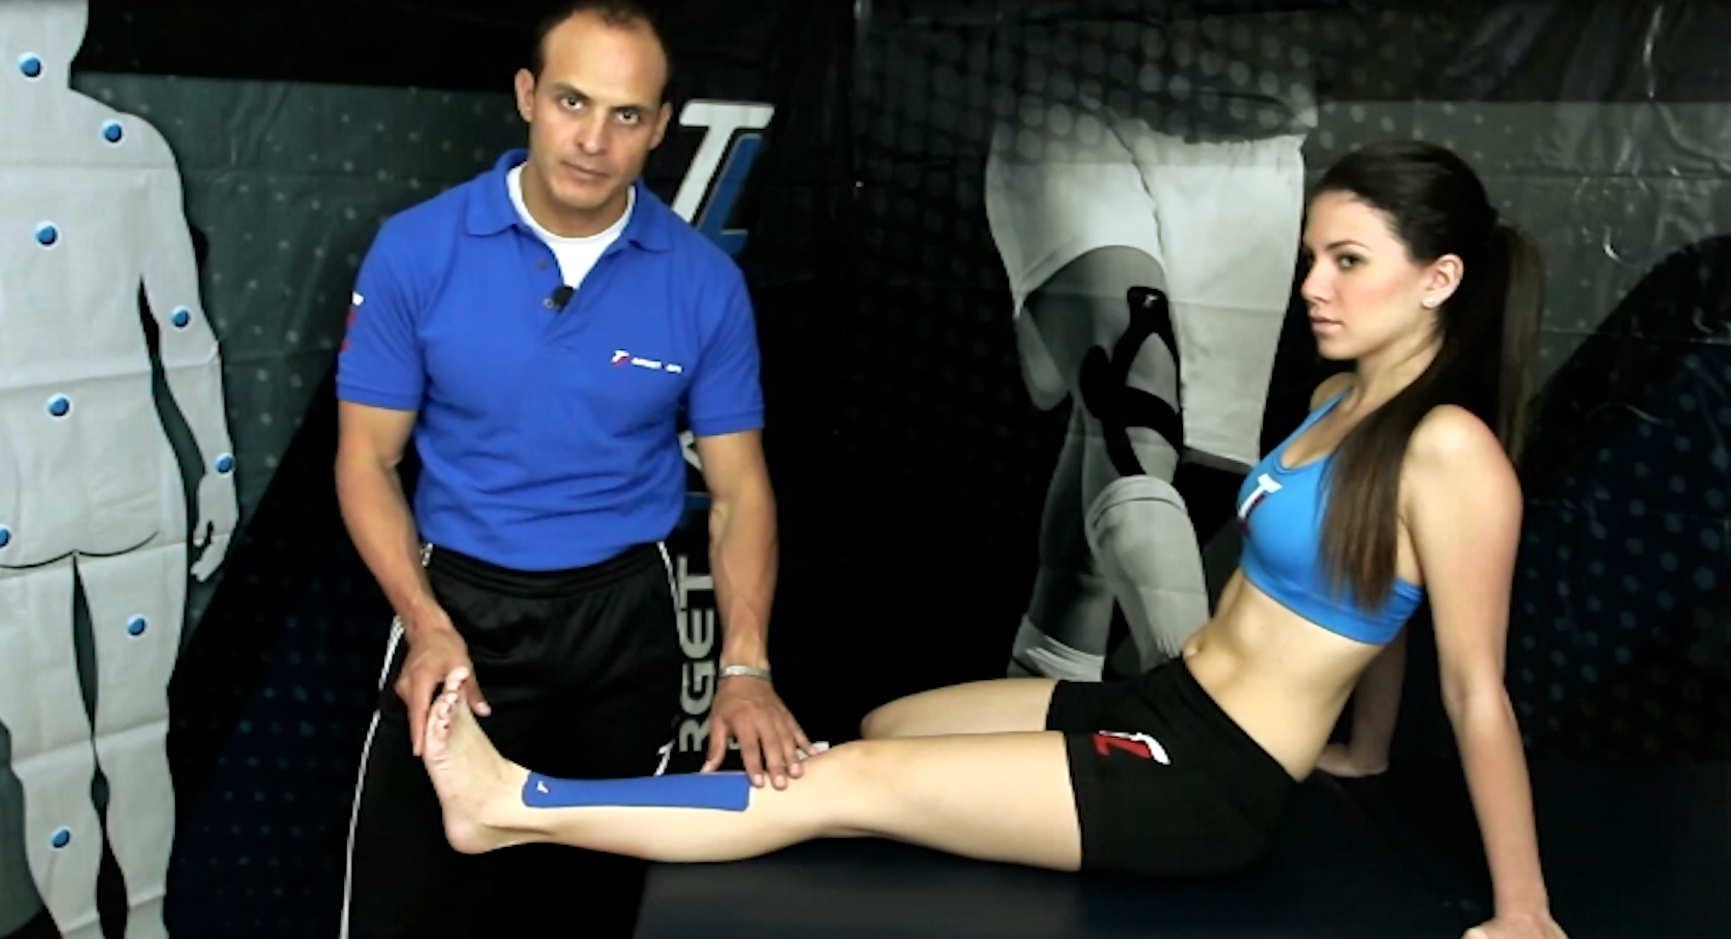 Shin Splints treatment with TT Target Tape